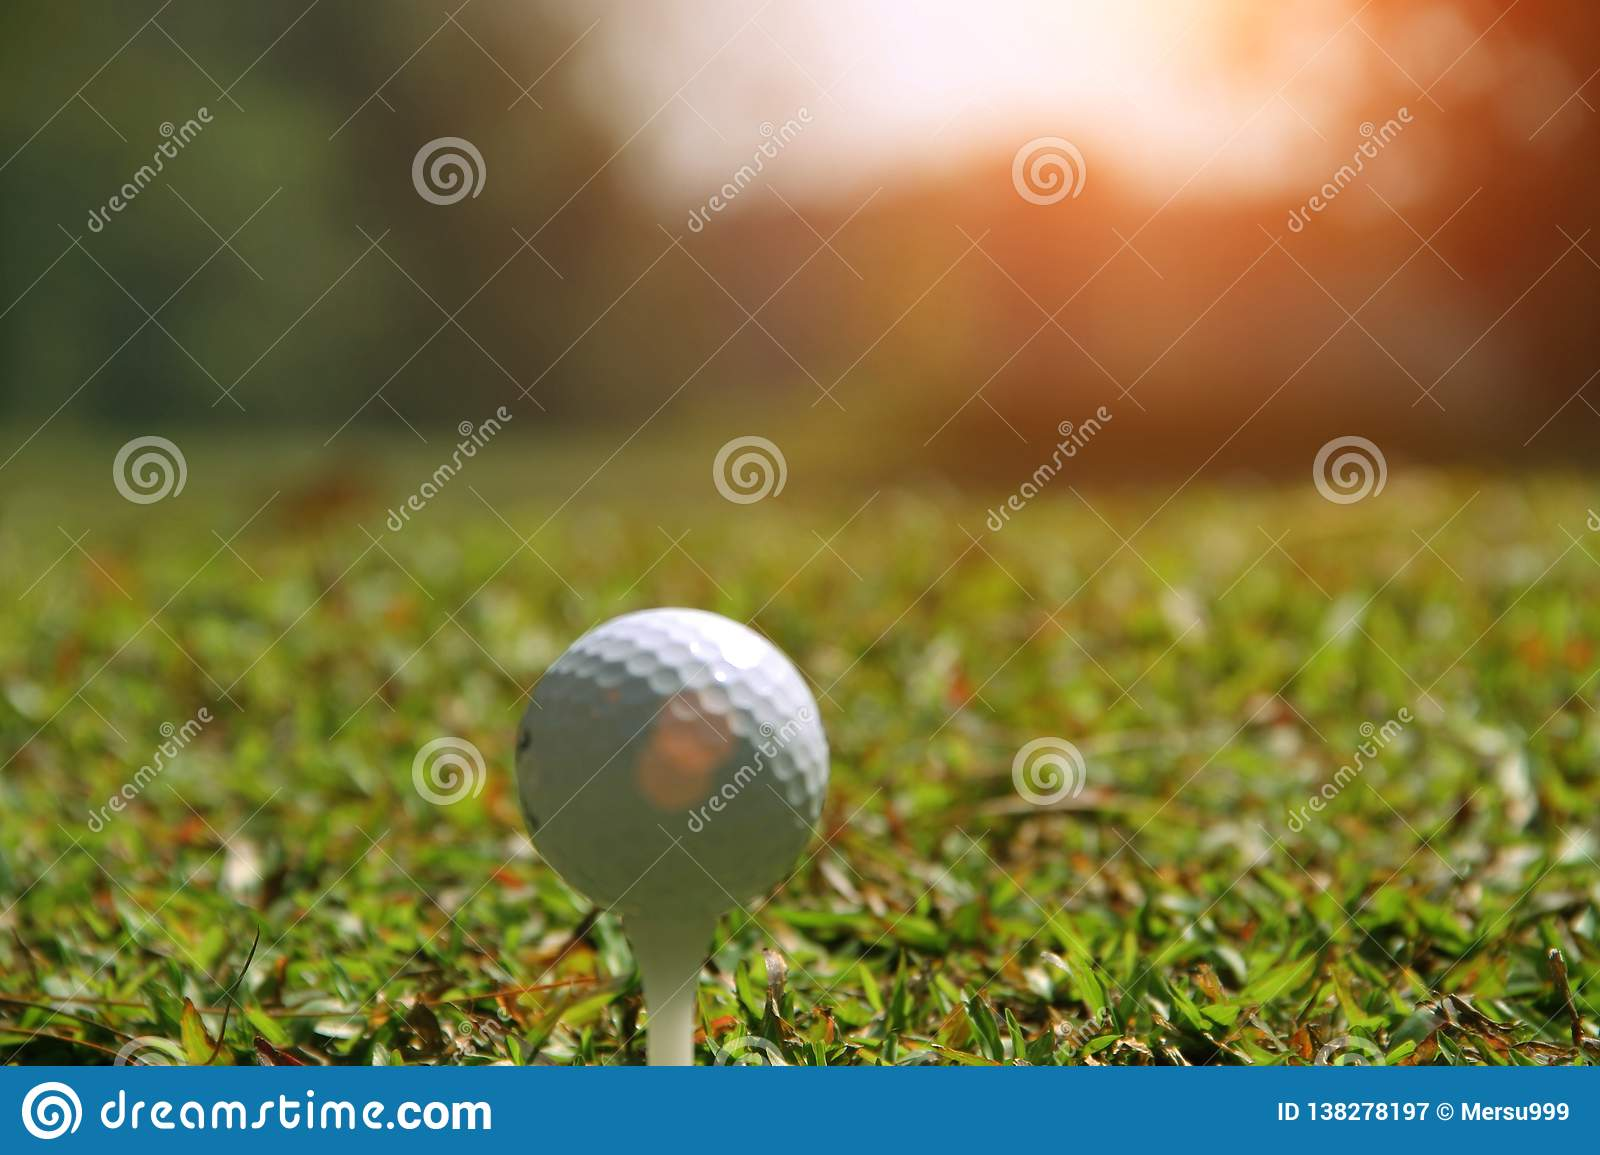 Blurred golf ball on green in the evening golf course